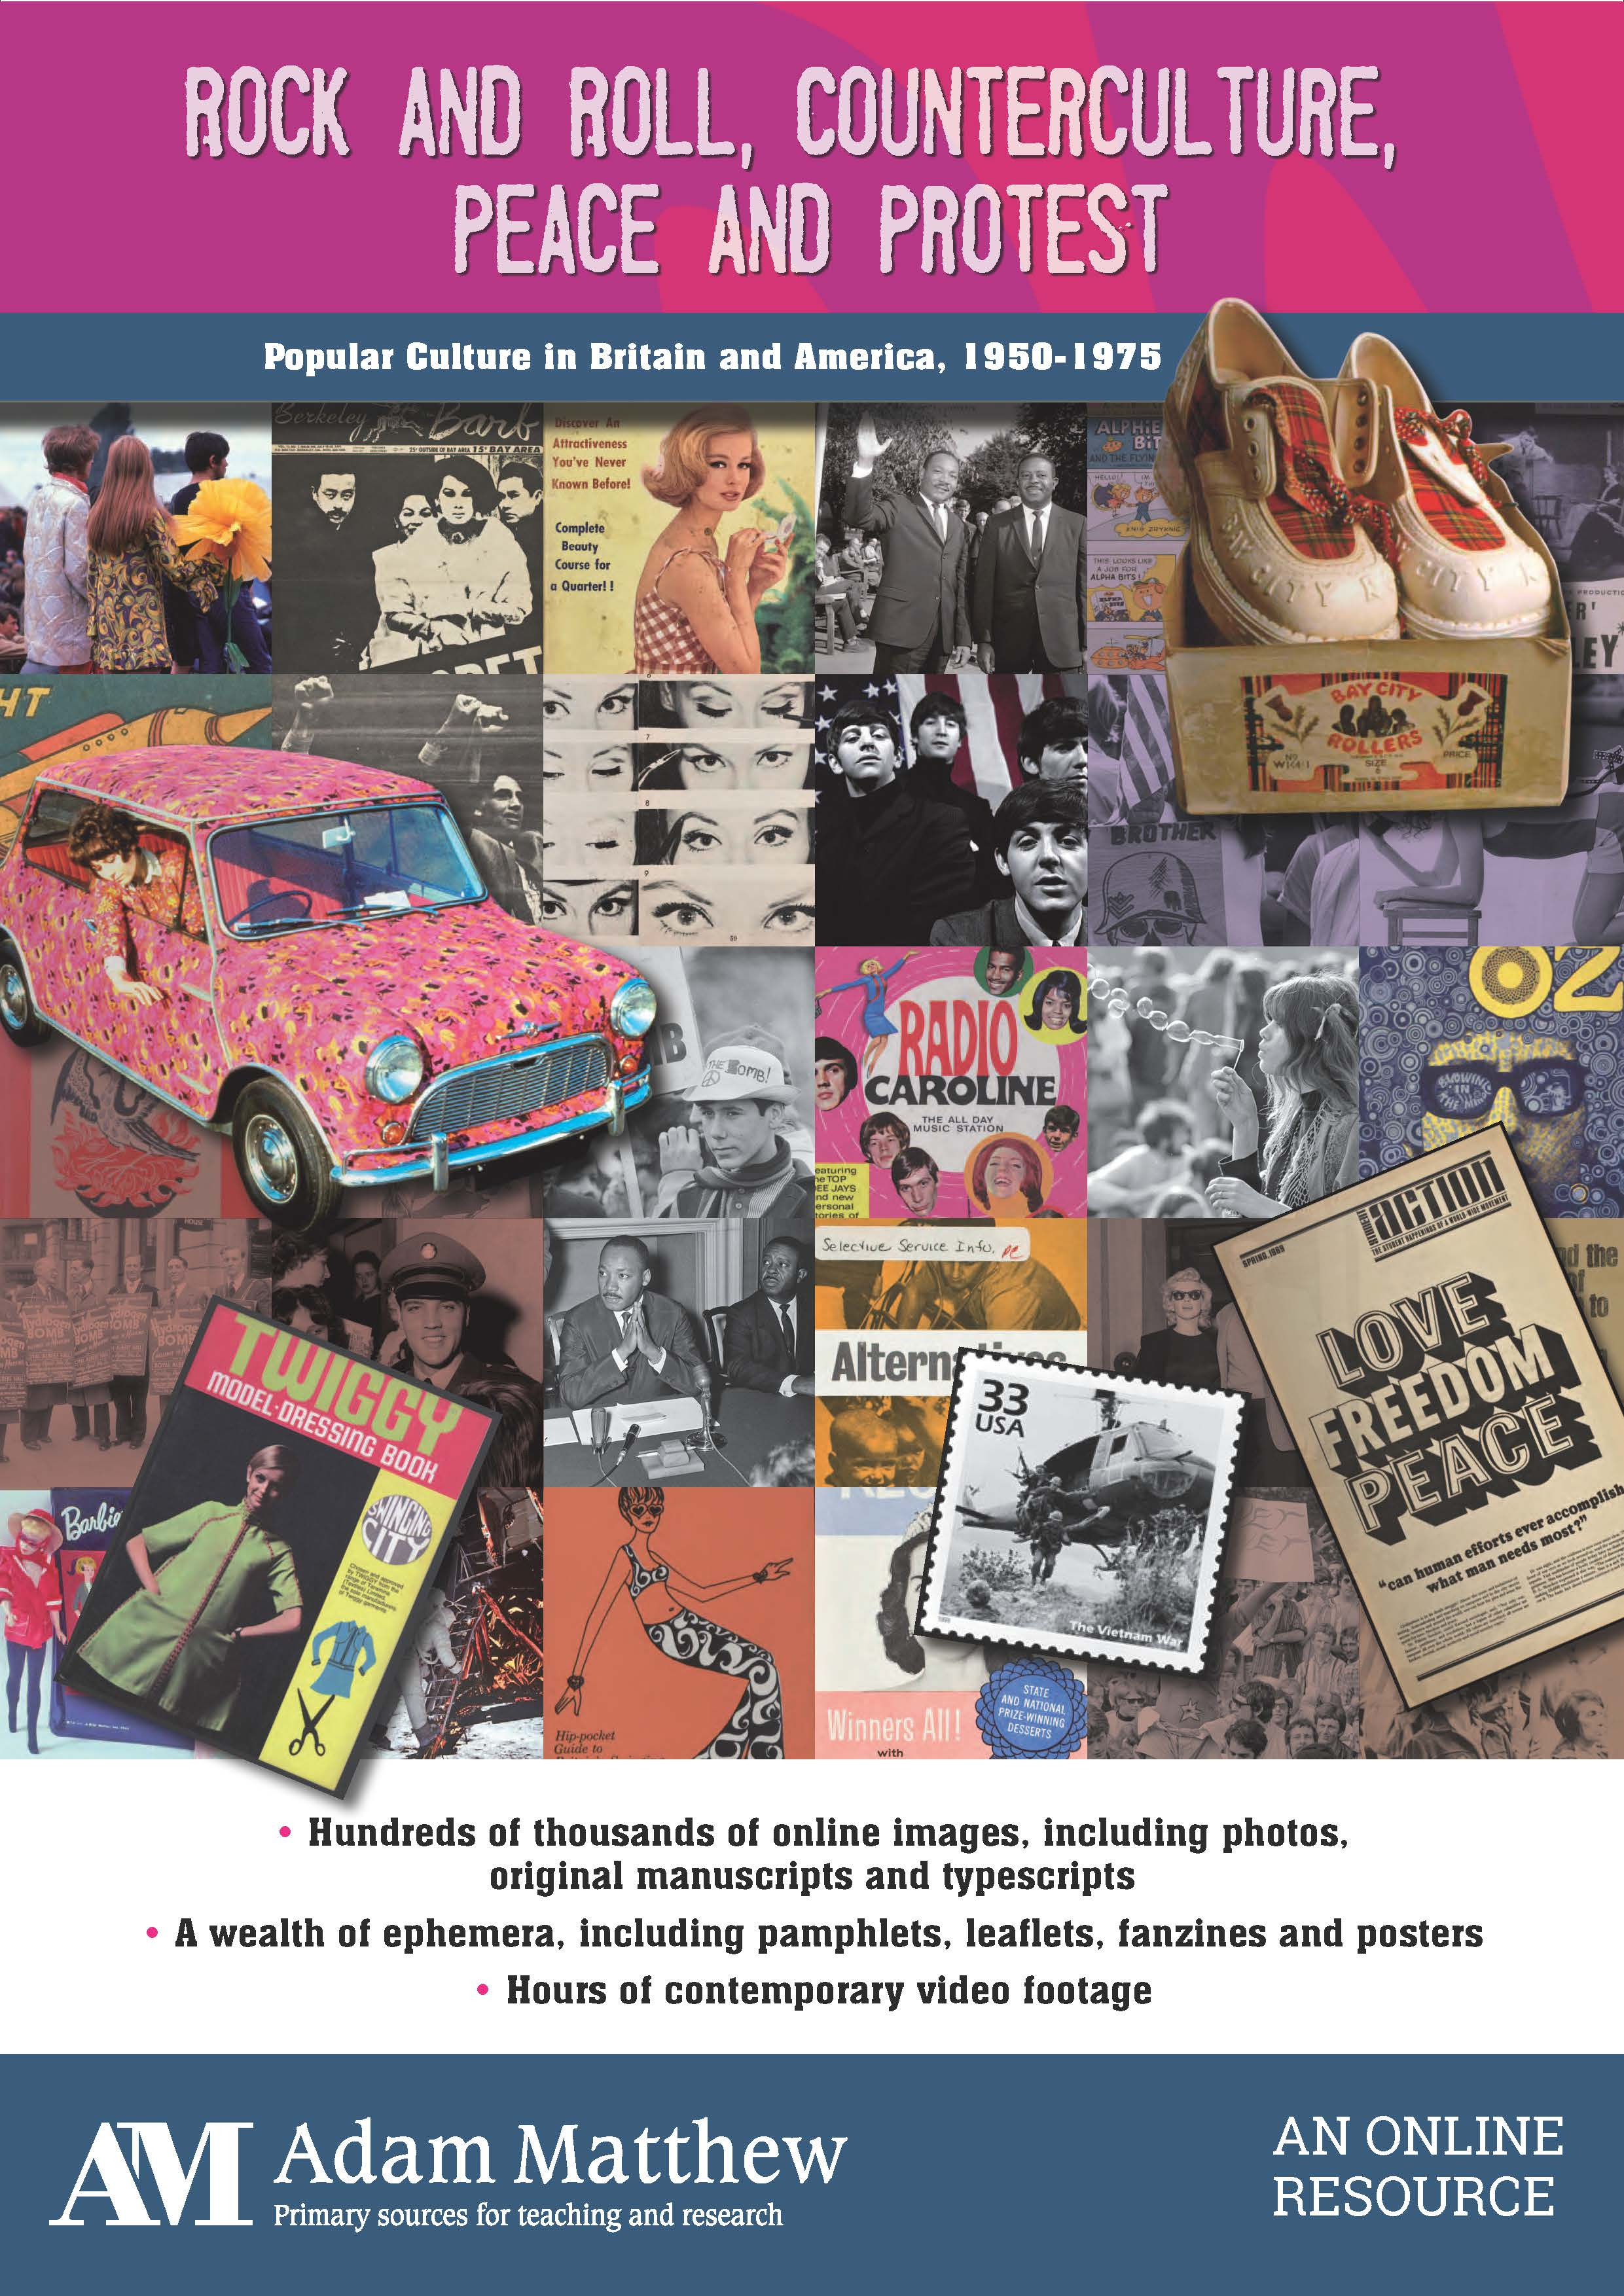 Collage of images from 1950-1975 including the Beatles, Martin Luther King Jr. and Twiggy among others